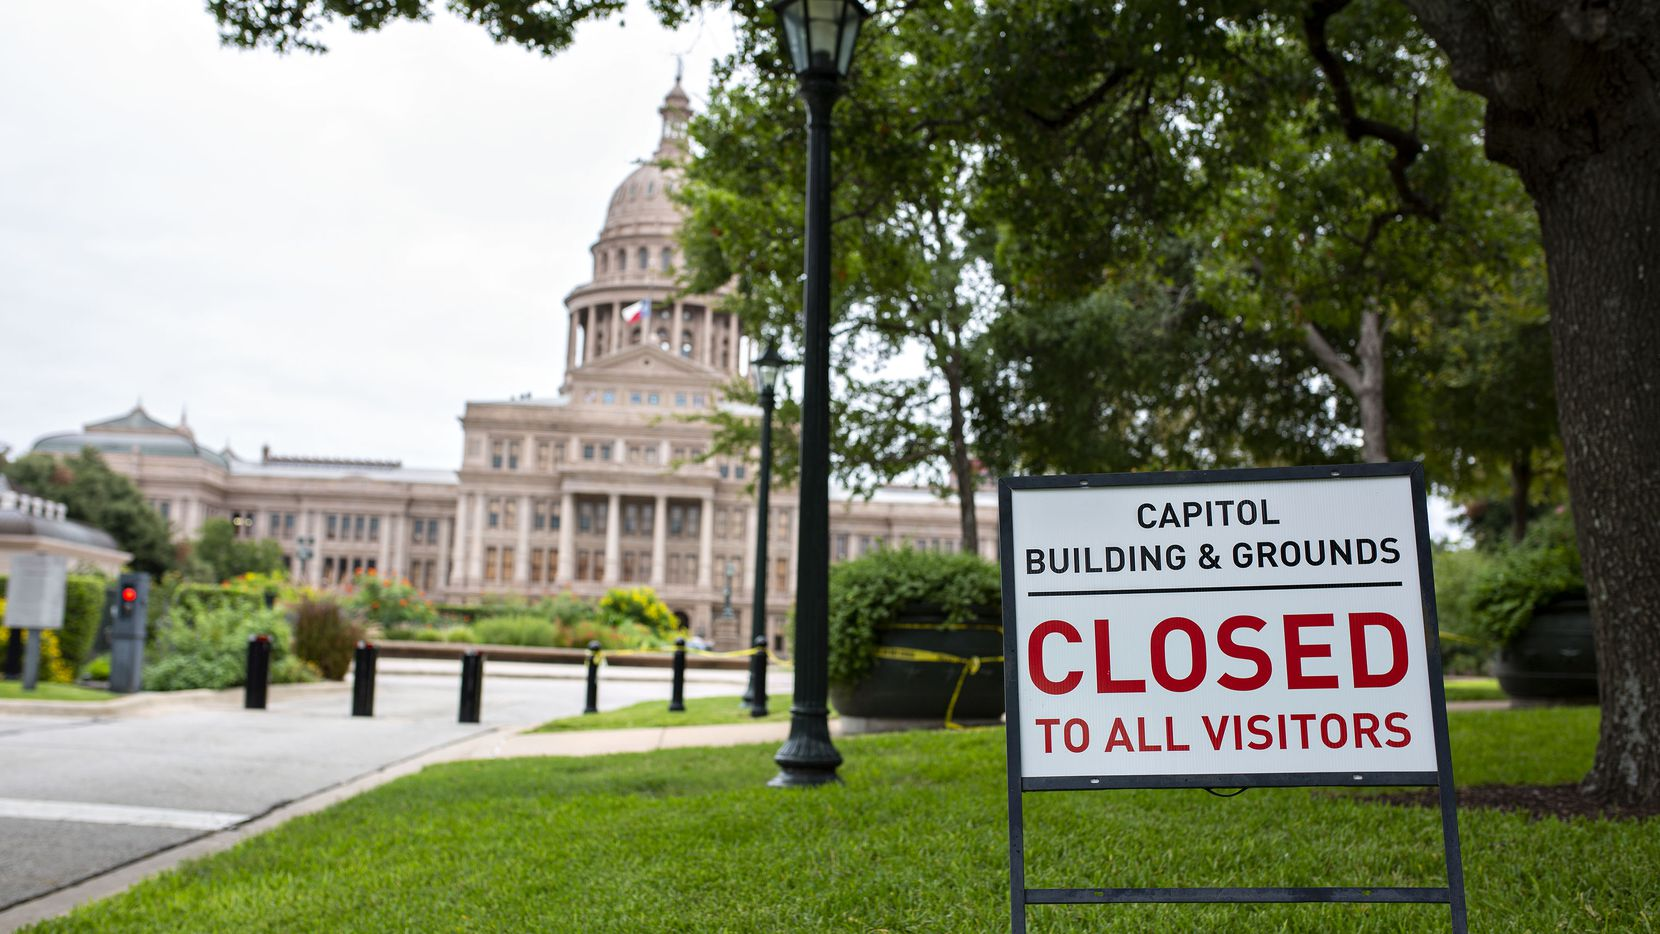 Yellow police tape and closed signs dot the grounds of the Texas Capitol in Austin, as it remained closed to visitors on Sept. 24, 2020 -- 110 days before the start of the Legislature's 87th regular session on Jan. 12, 2021.